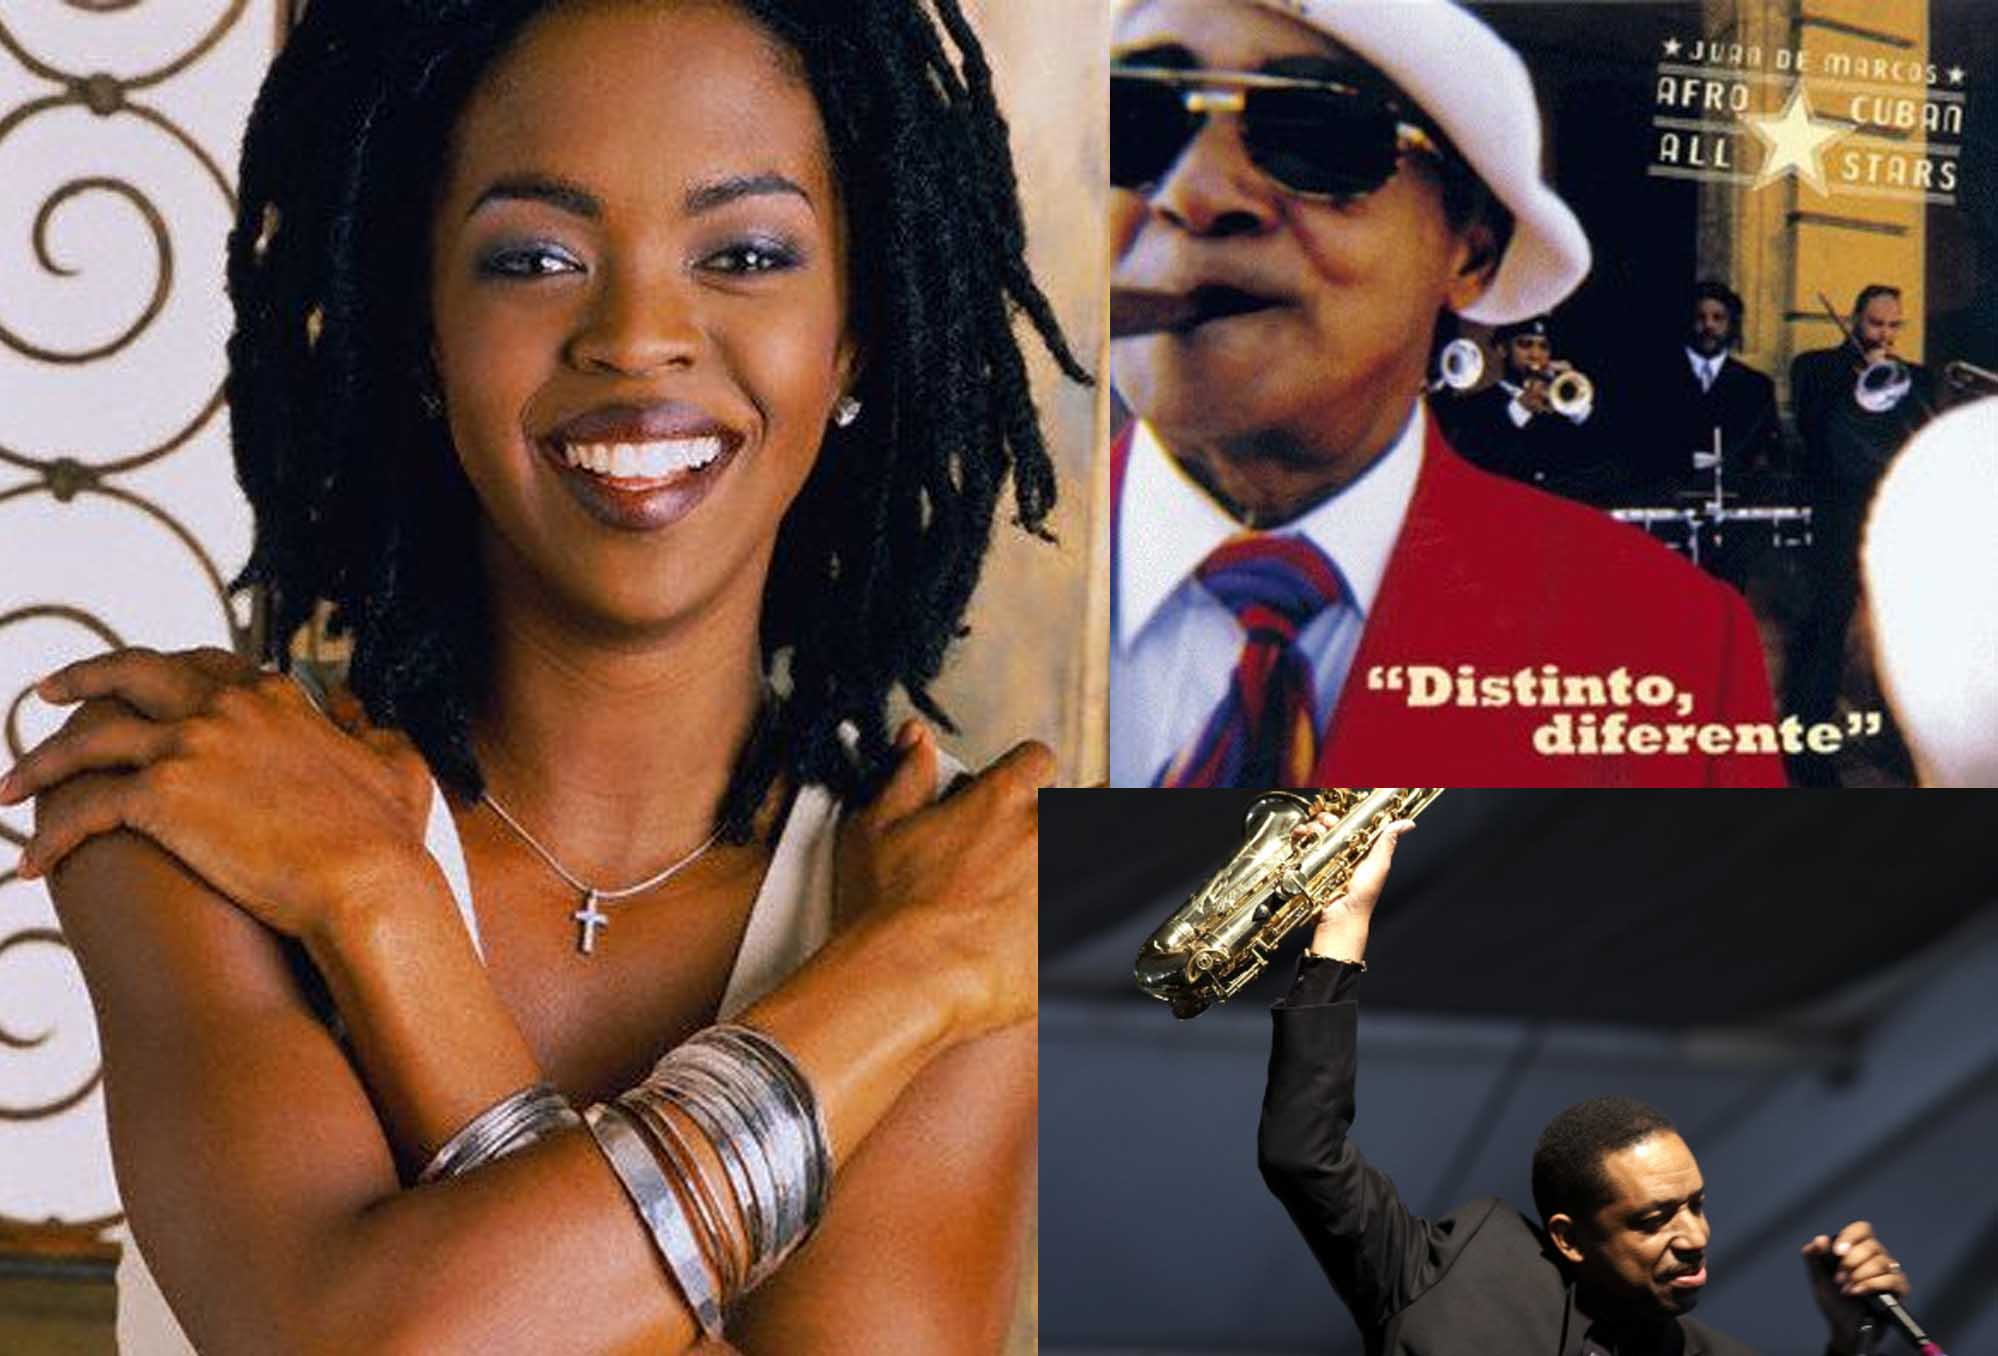 Lauryn Hill, Afro Cuban All Stars, Donald Harrison...